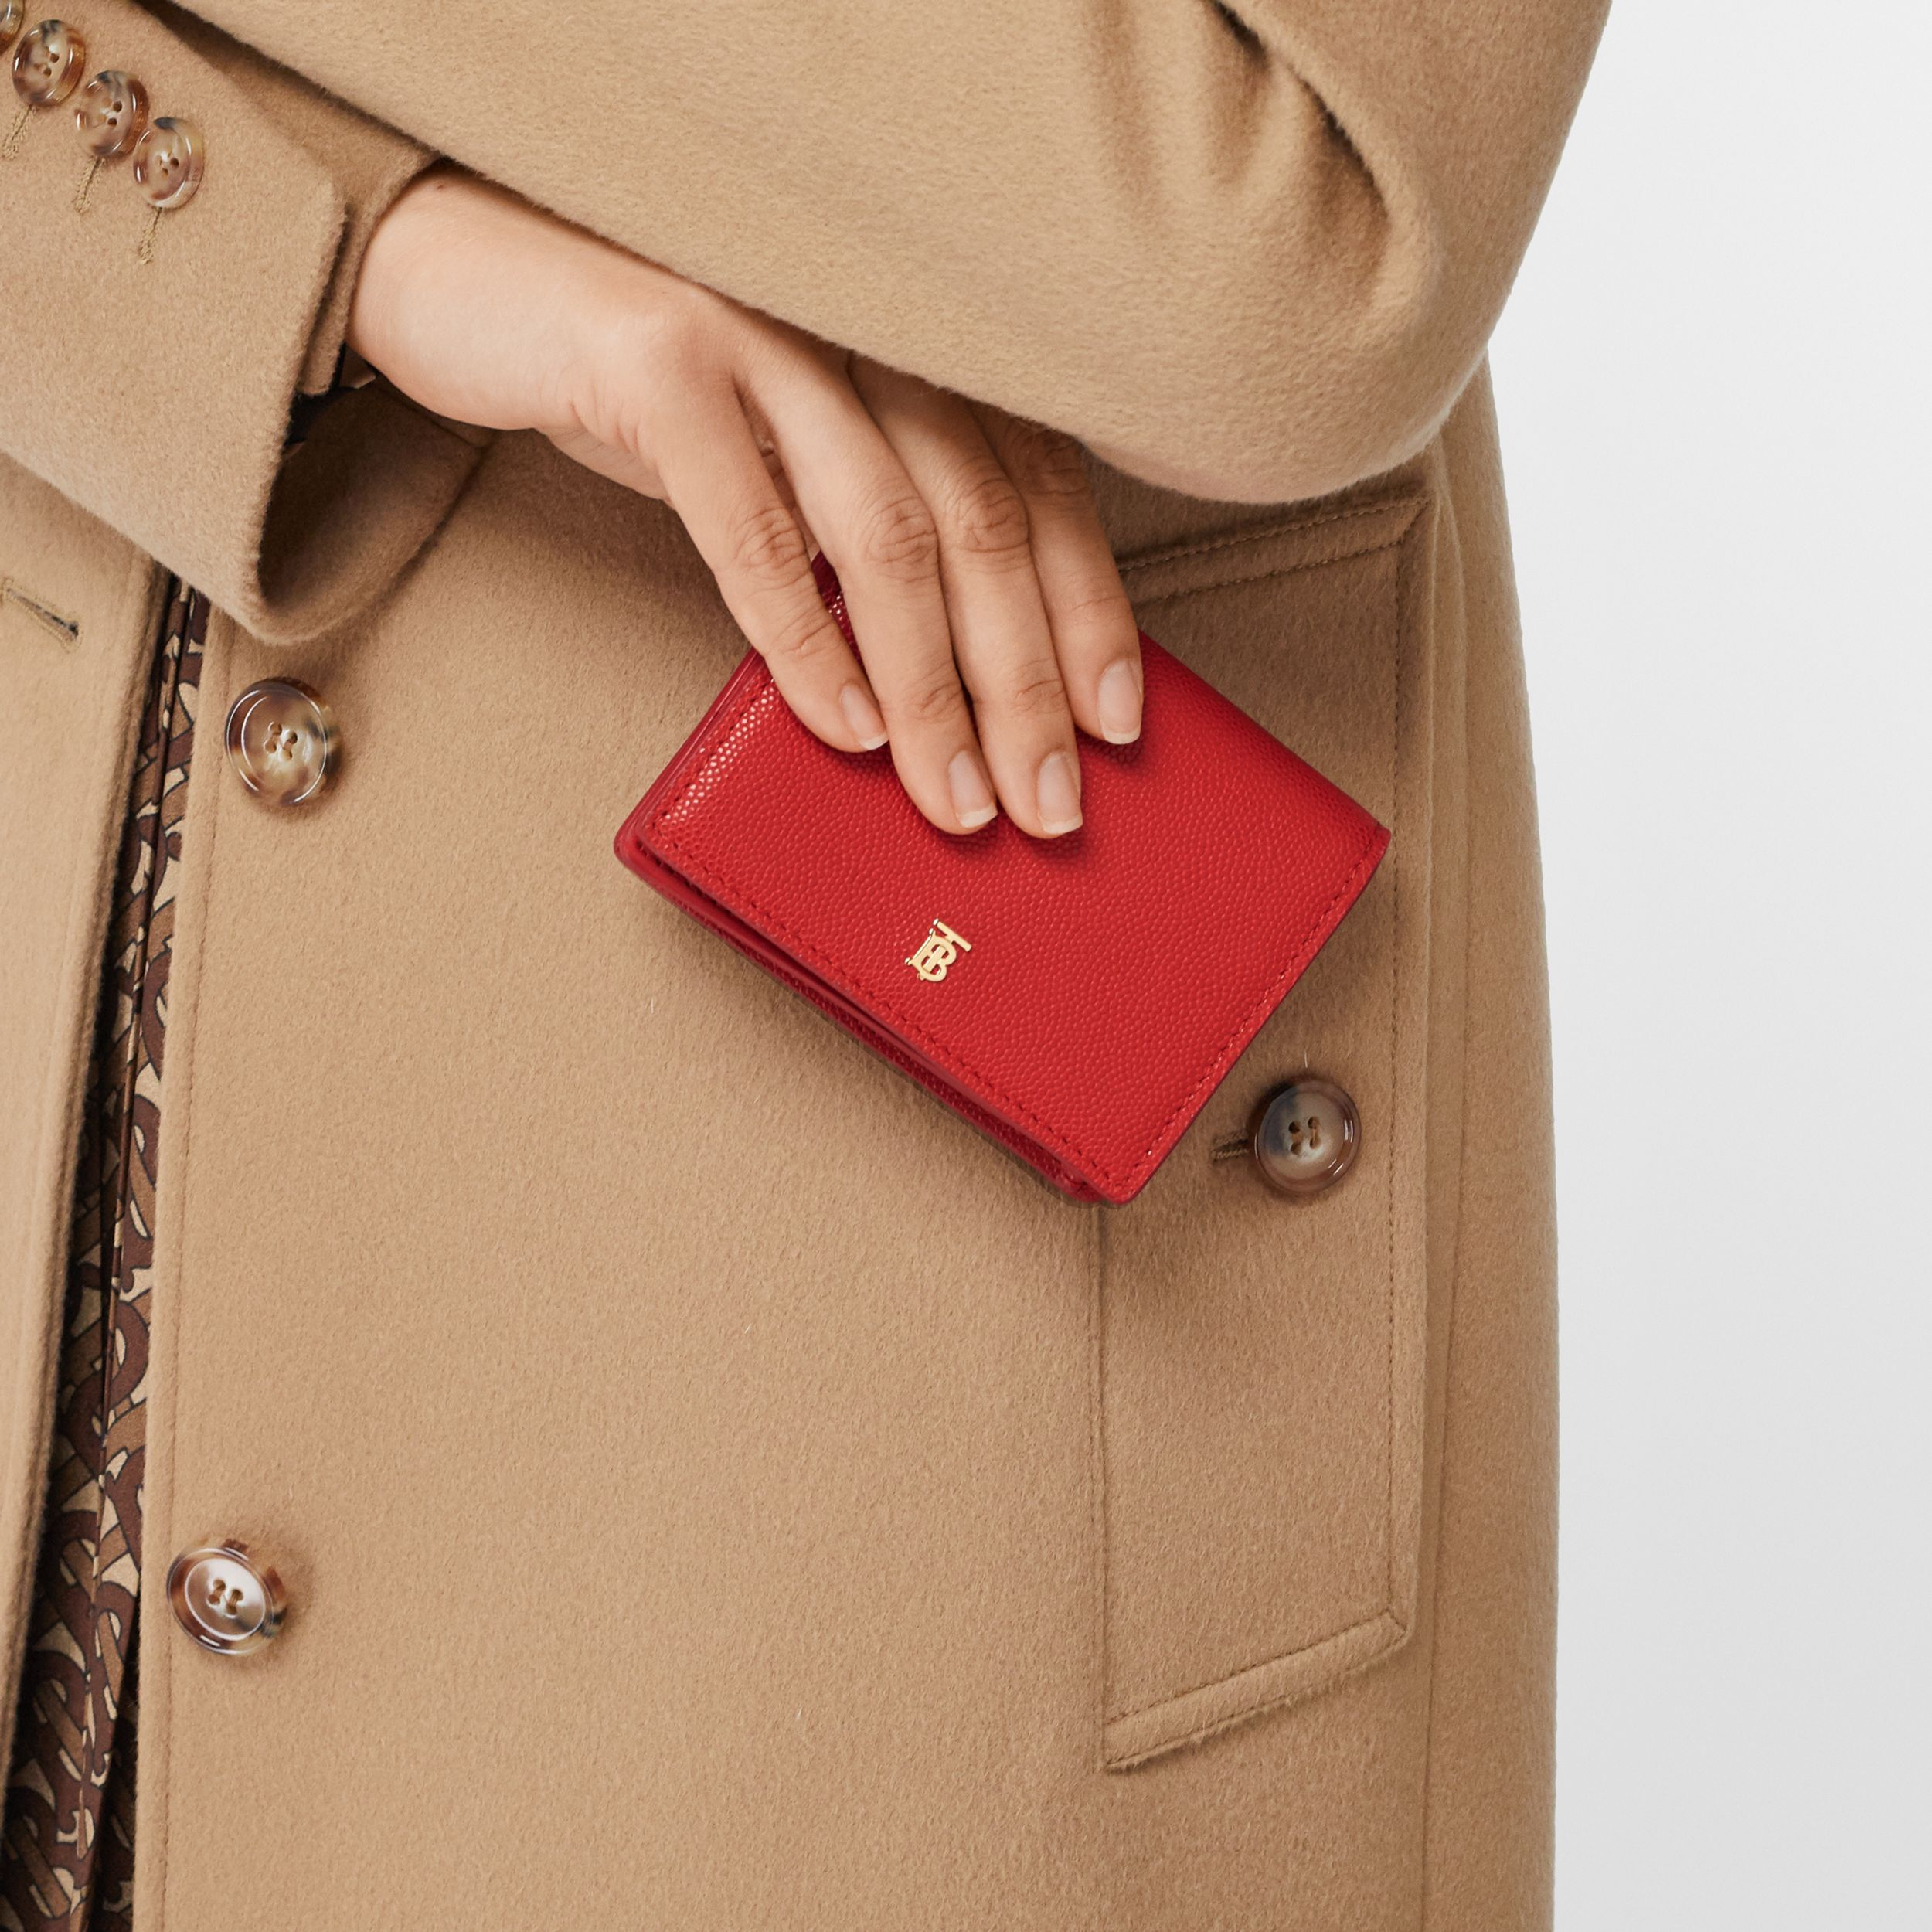 Grainy Leather Card Case with Detachable Strap in Bright Red - Women | Burberry Hong Kong S.A.R. - 3